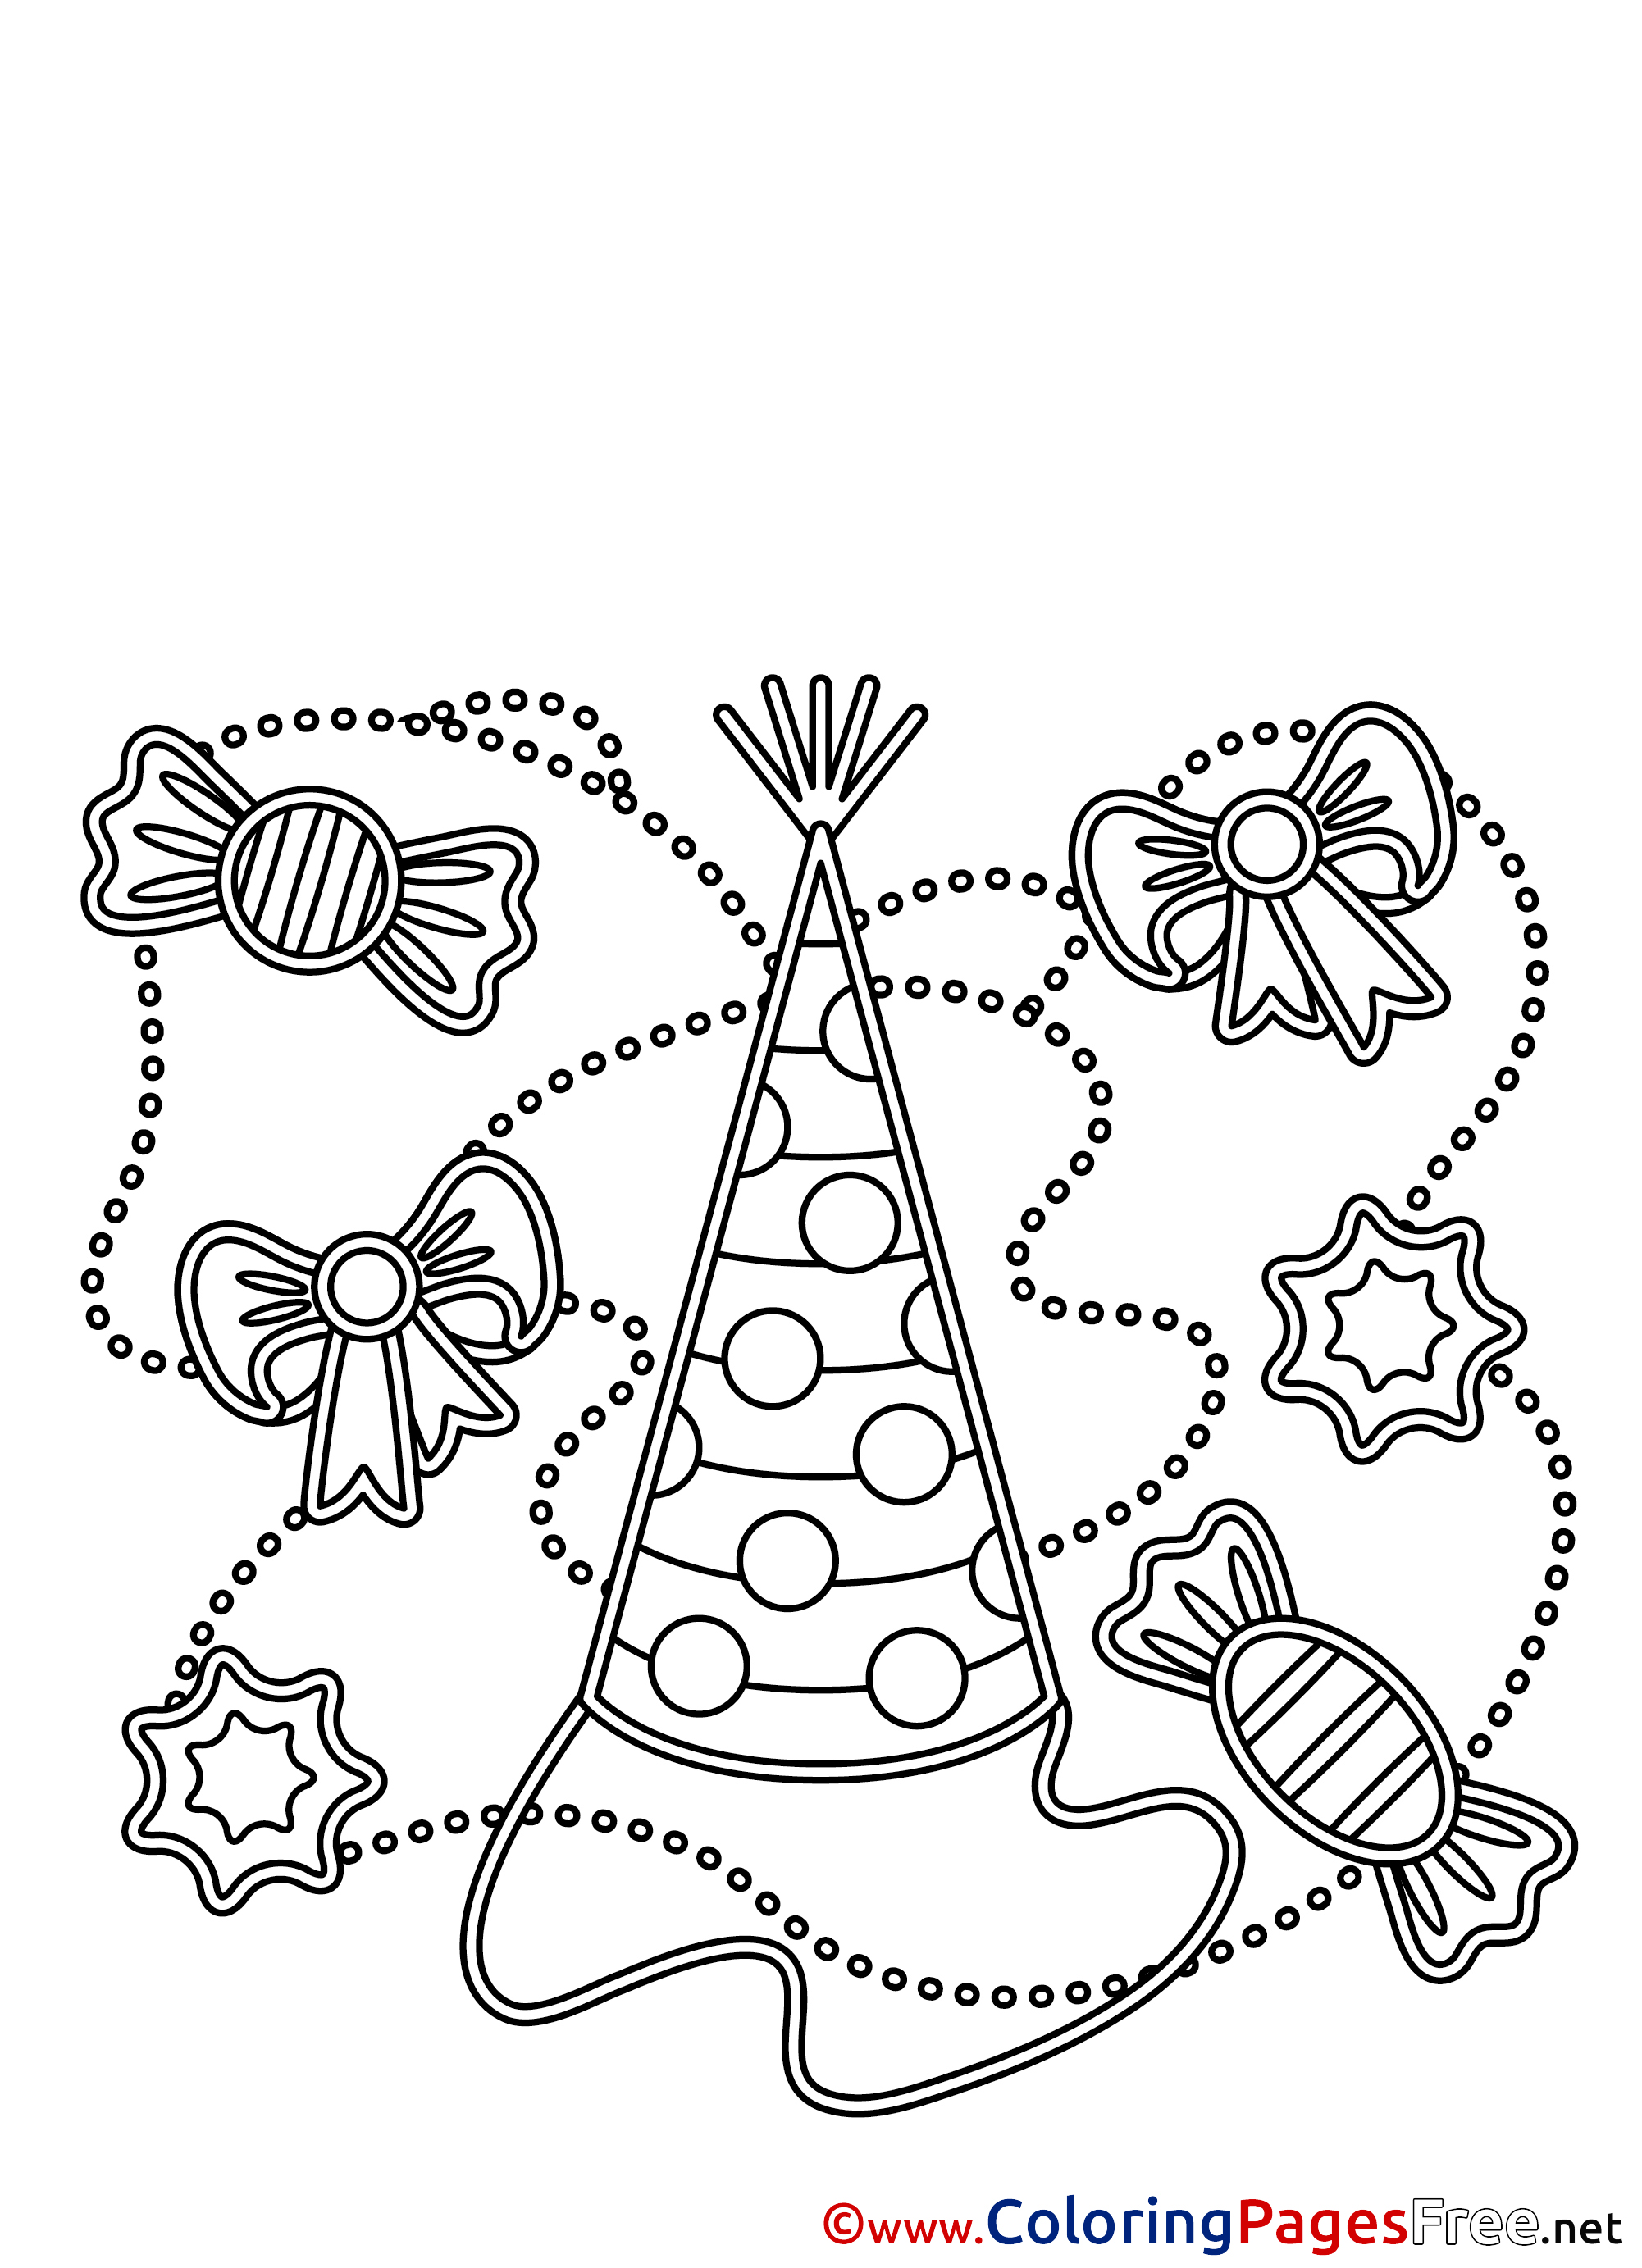 Elf Hats Coloring Pages Printable